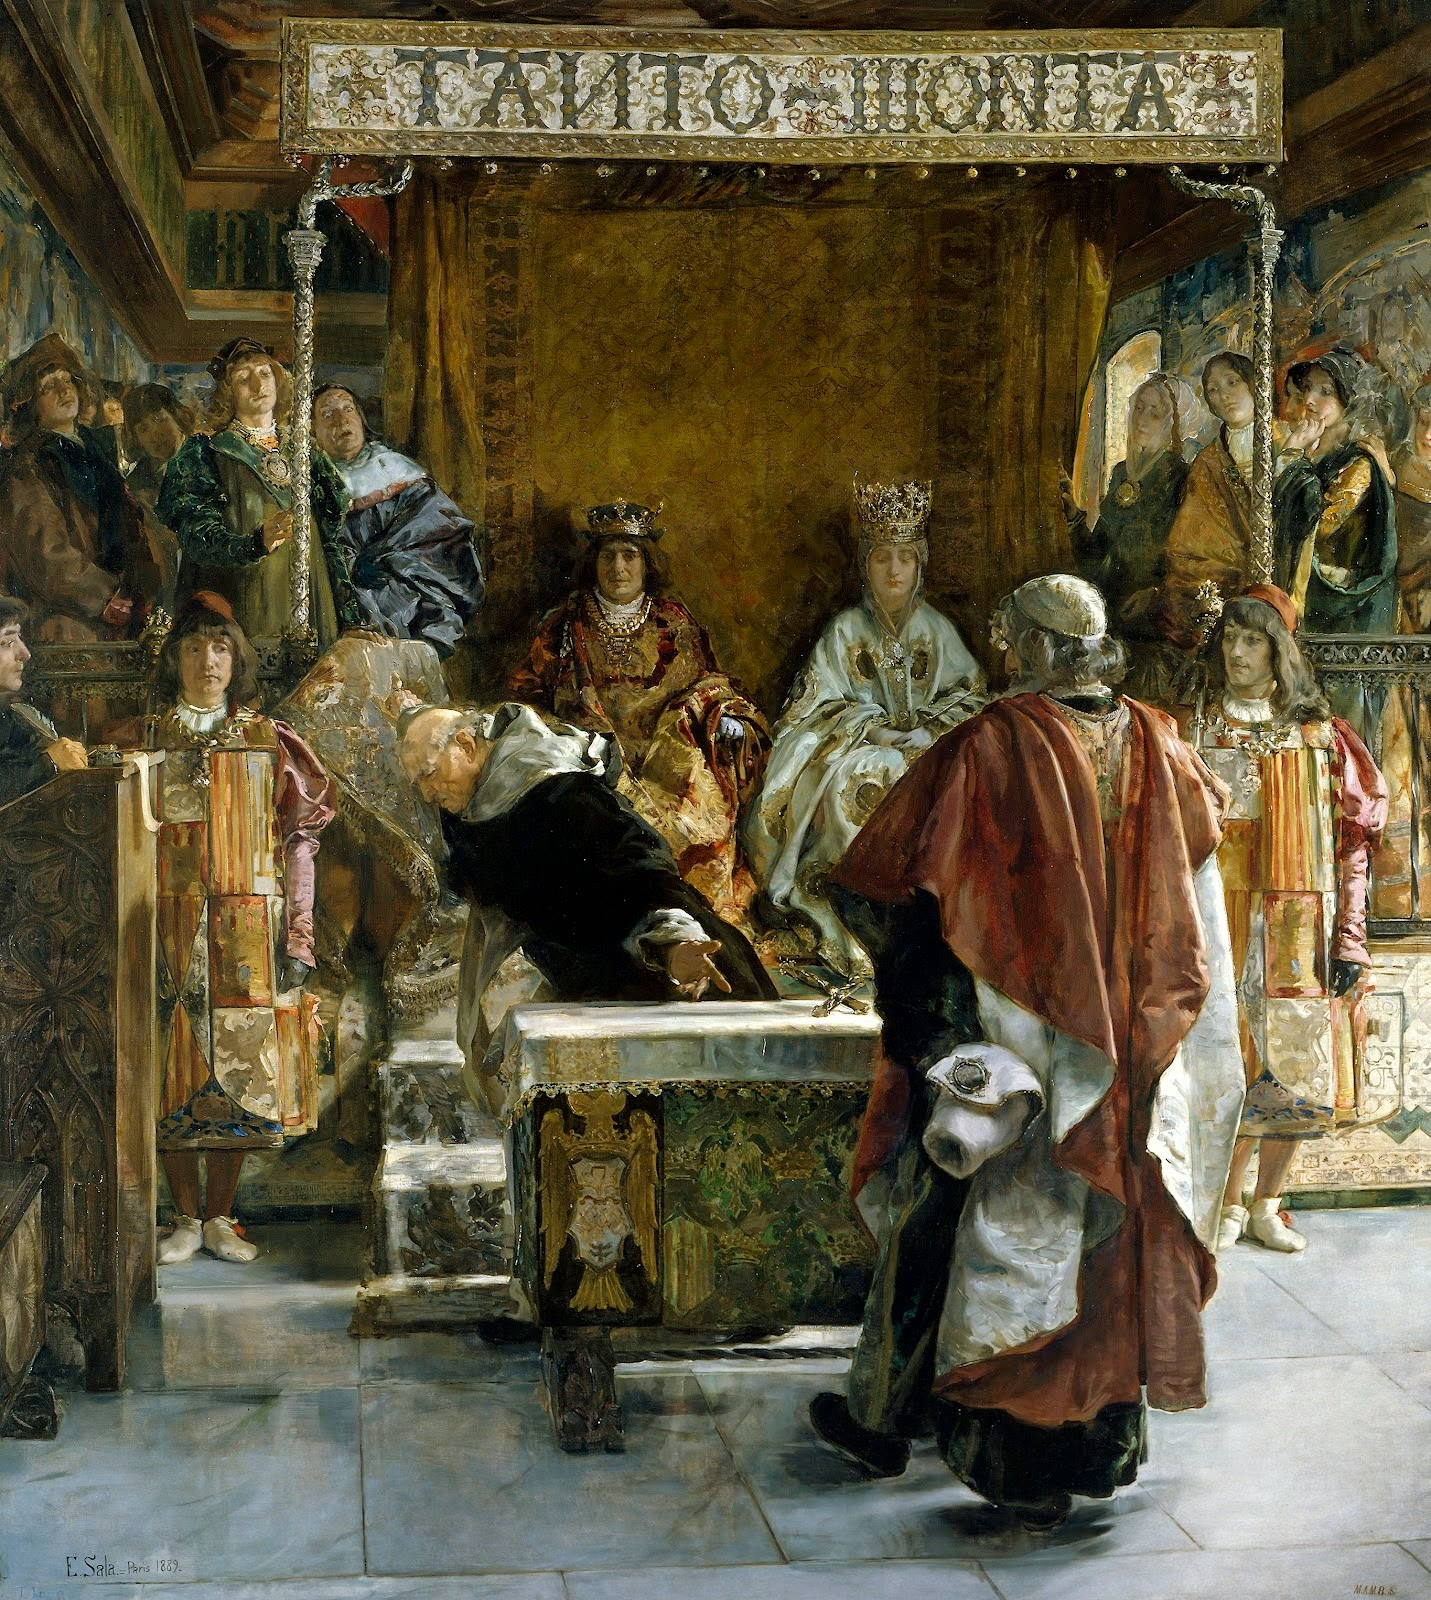 Expulsion of the Jews by the Catholic Kings